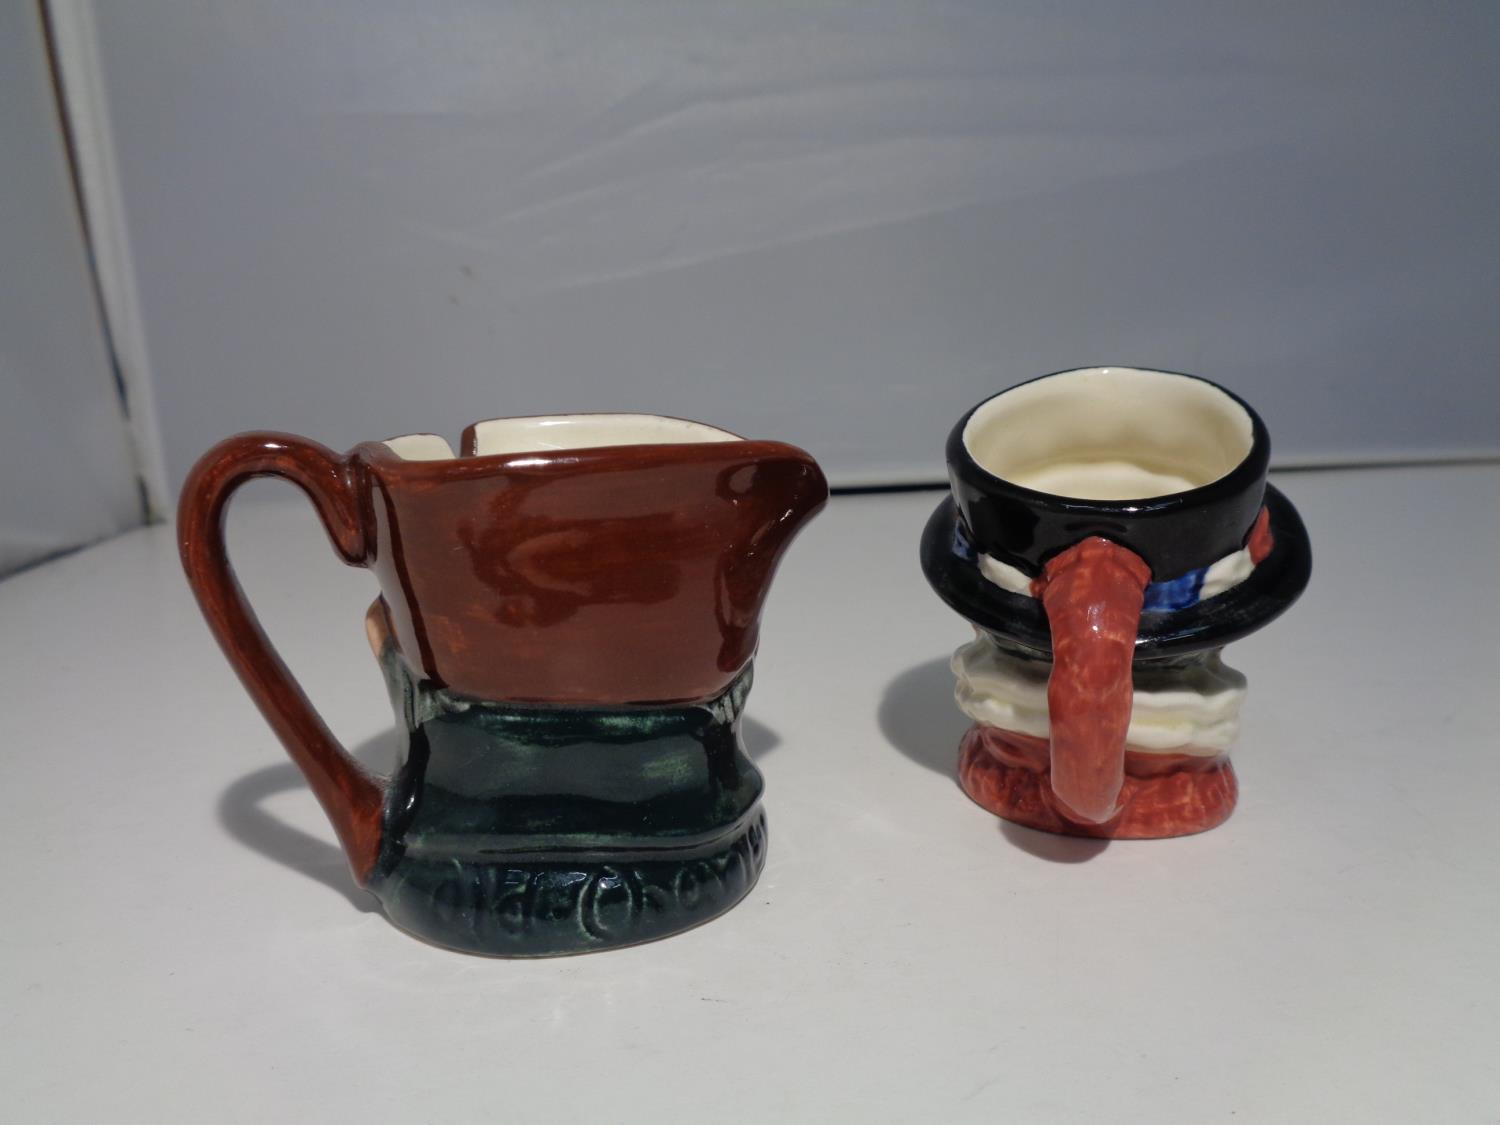 TWO MINIATURE ROYAL DOULTON TOBY JUGS 'BEEFEATER' AND 'OLD CHARLEY' - Image 3 of 6